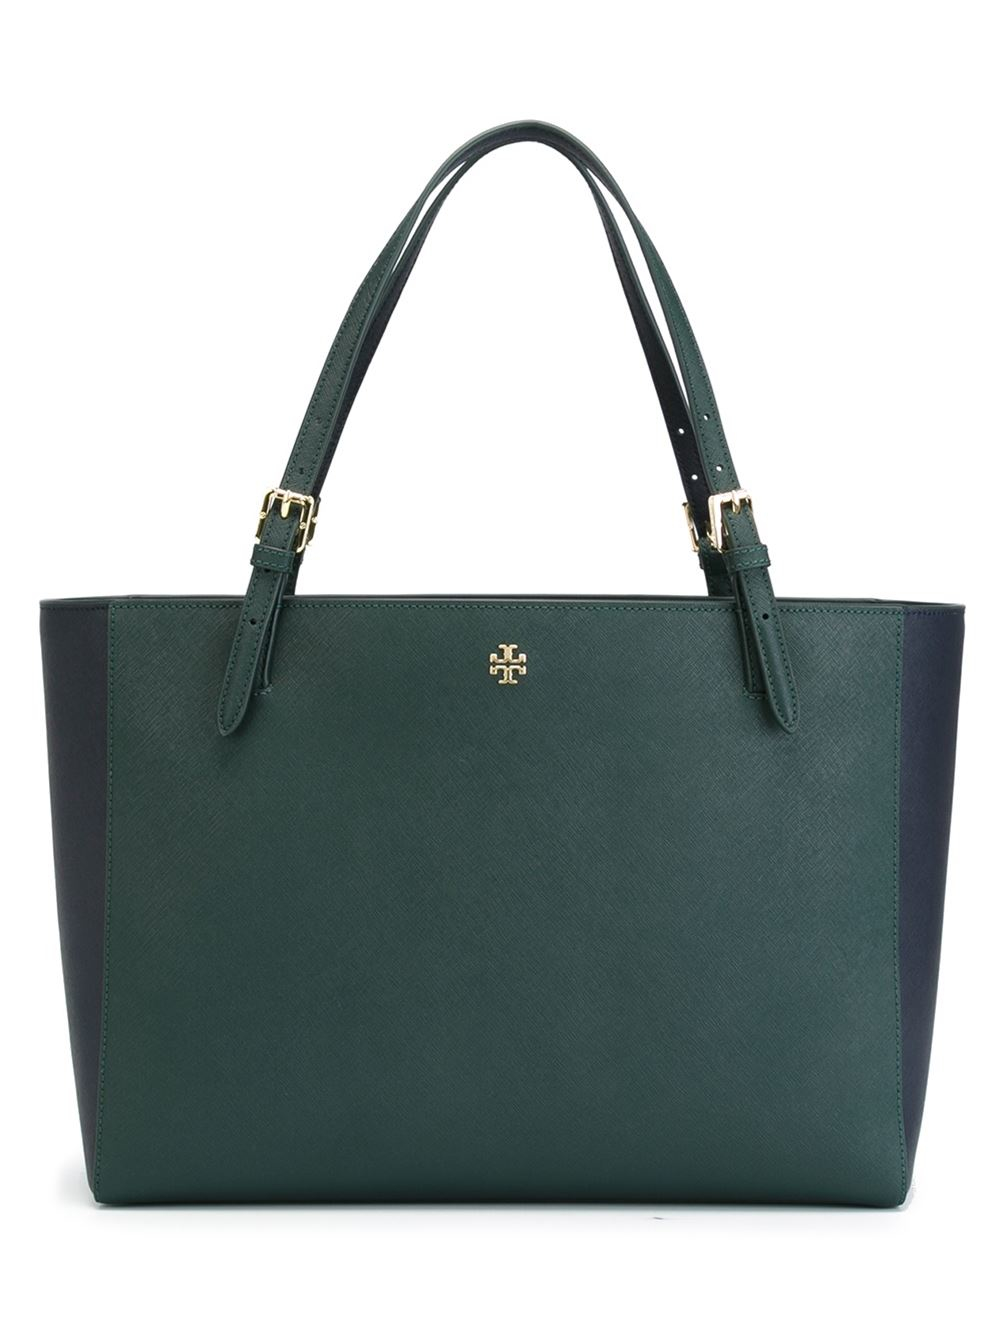 Tory Burch Perry Tote Bag In Green Lyst